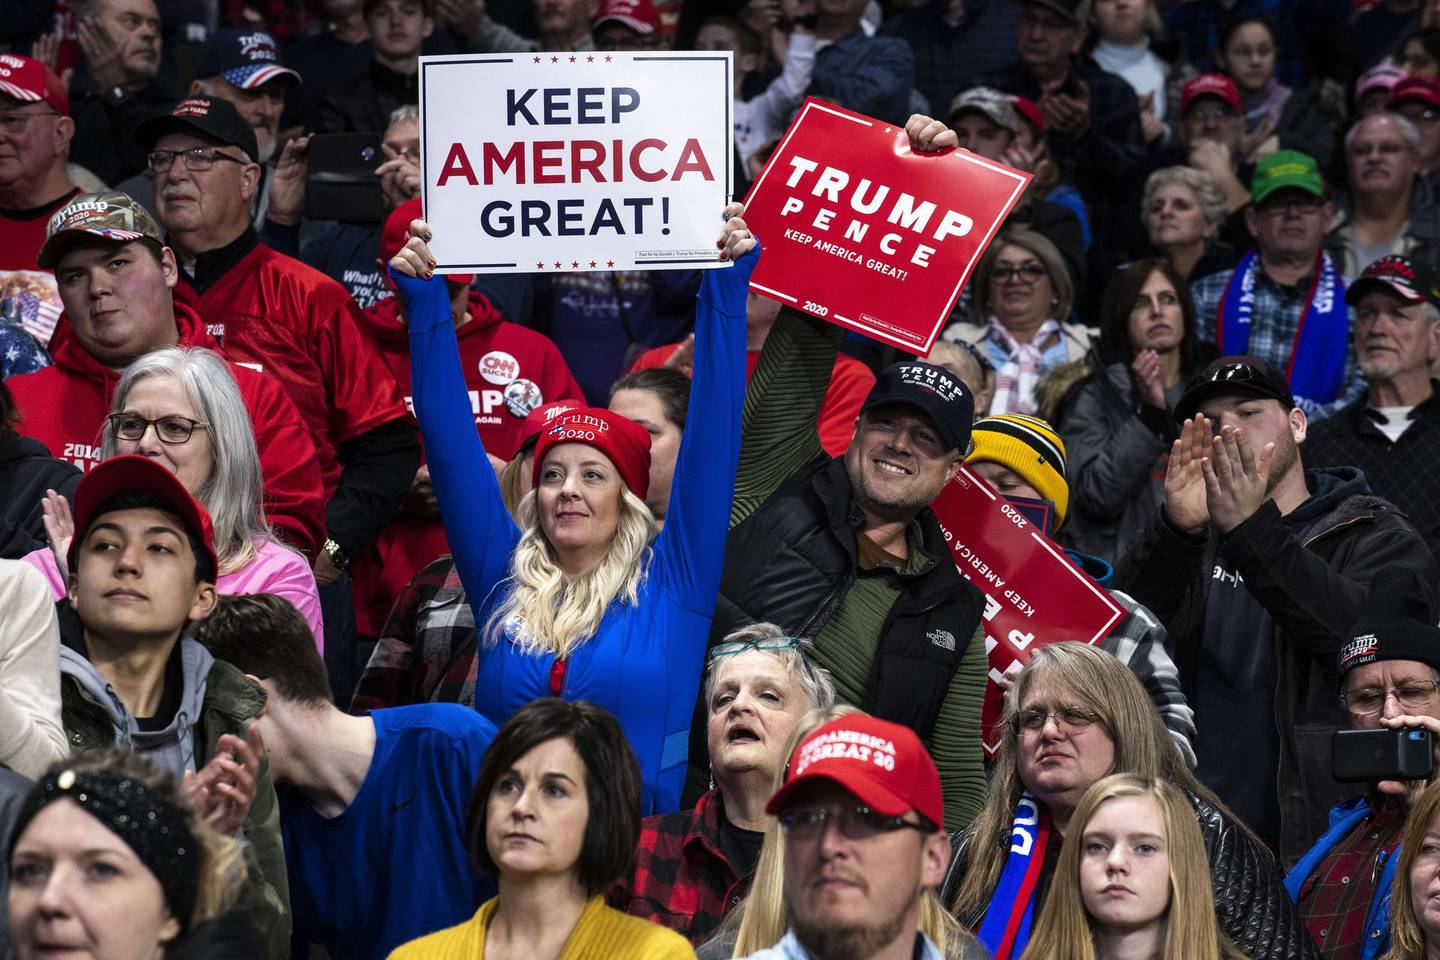 """TOLEDO, OH - JANUARY 09: Supporters cheer in the crowd as President Donald Trump speaks at a """"Keep America Great"""" campaign rally at the Huntington Center on January 9, 2020 in Toledo, Ohio. President Trump won the swing state of Ohio in 2016 by eight points over his opponent Hillary Clinton.   Brittany Greeson/Getty Images/AFP == FOR NEWSPAPERS, INTERNET, TELCOS & TELEVISION USE ONLY =="""